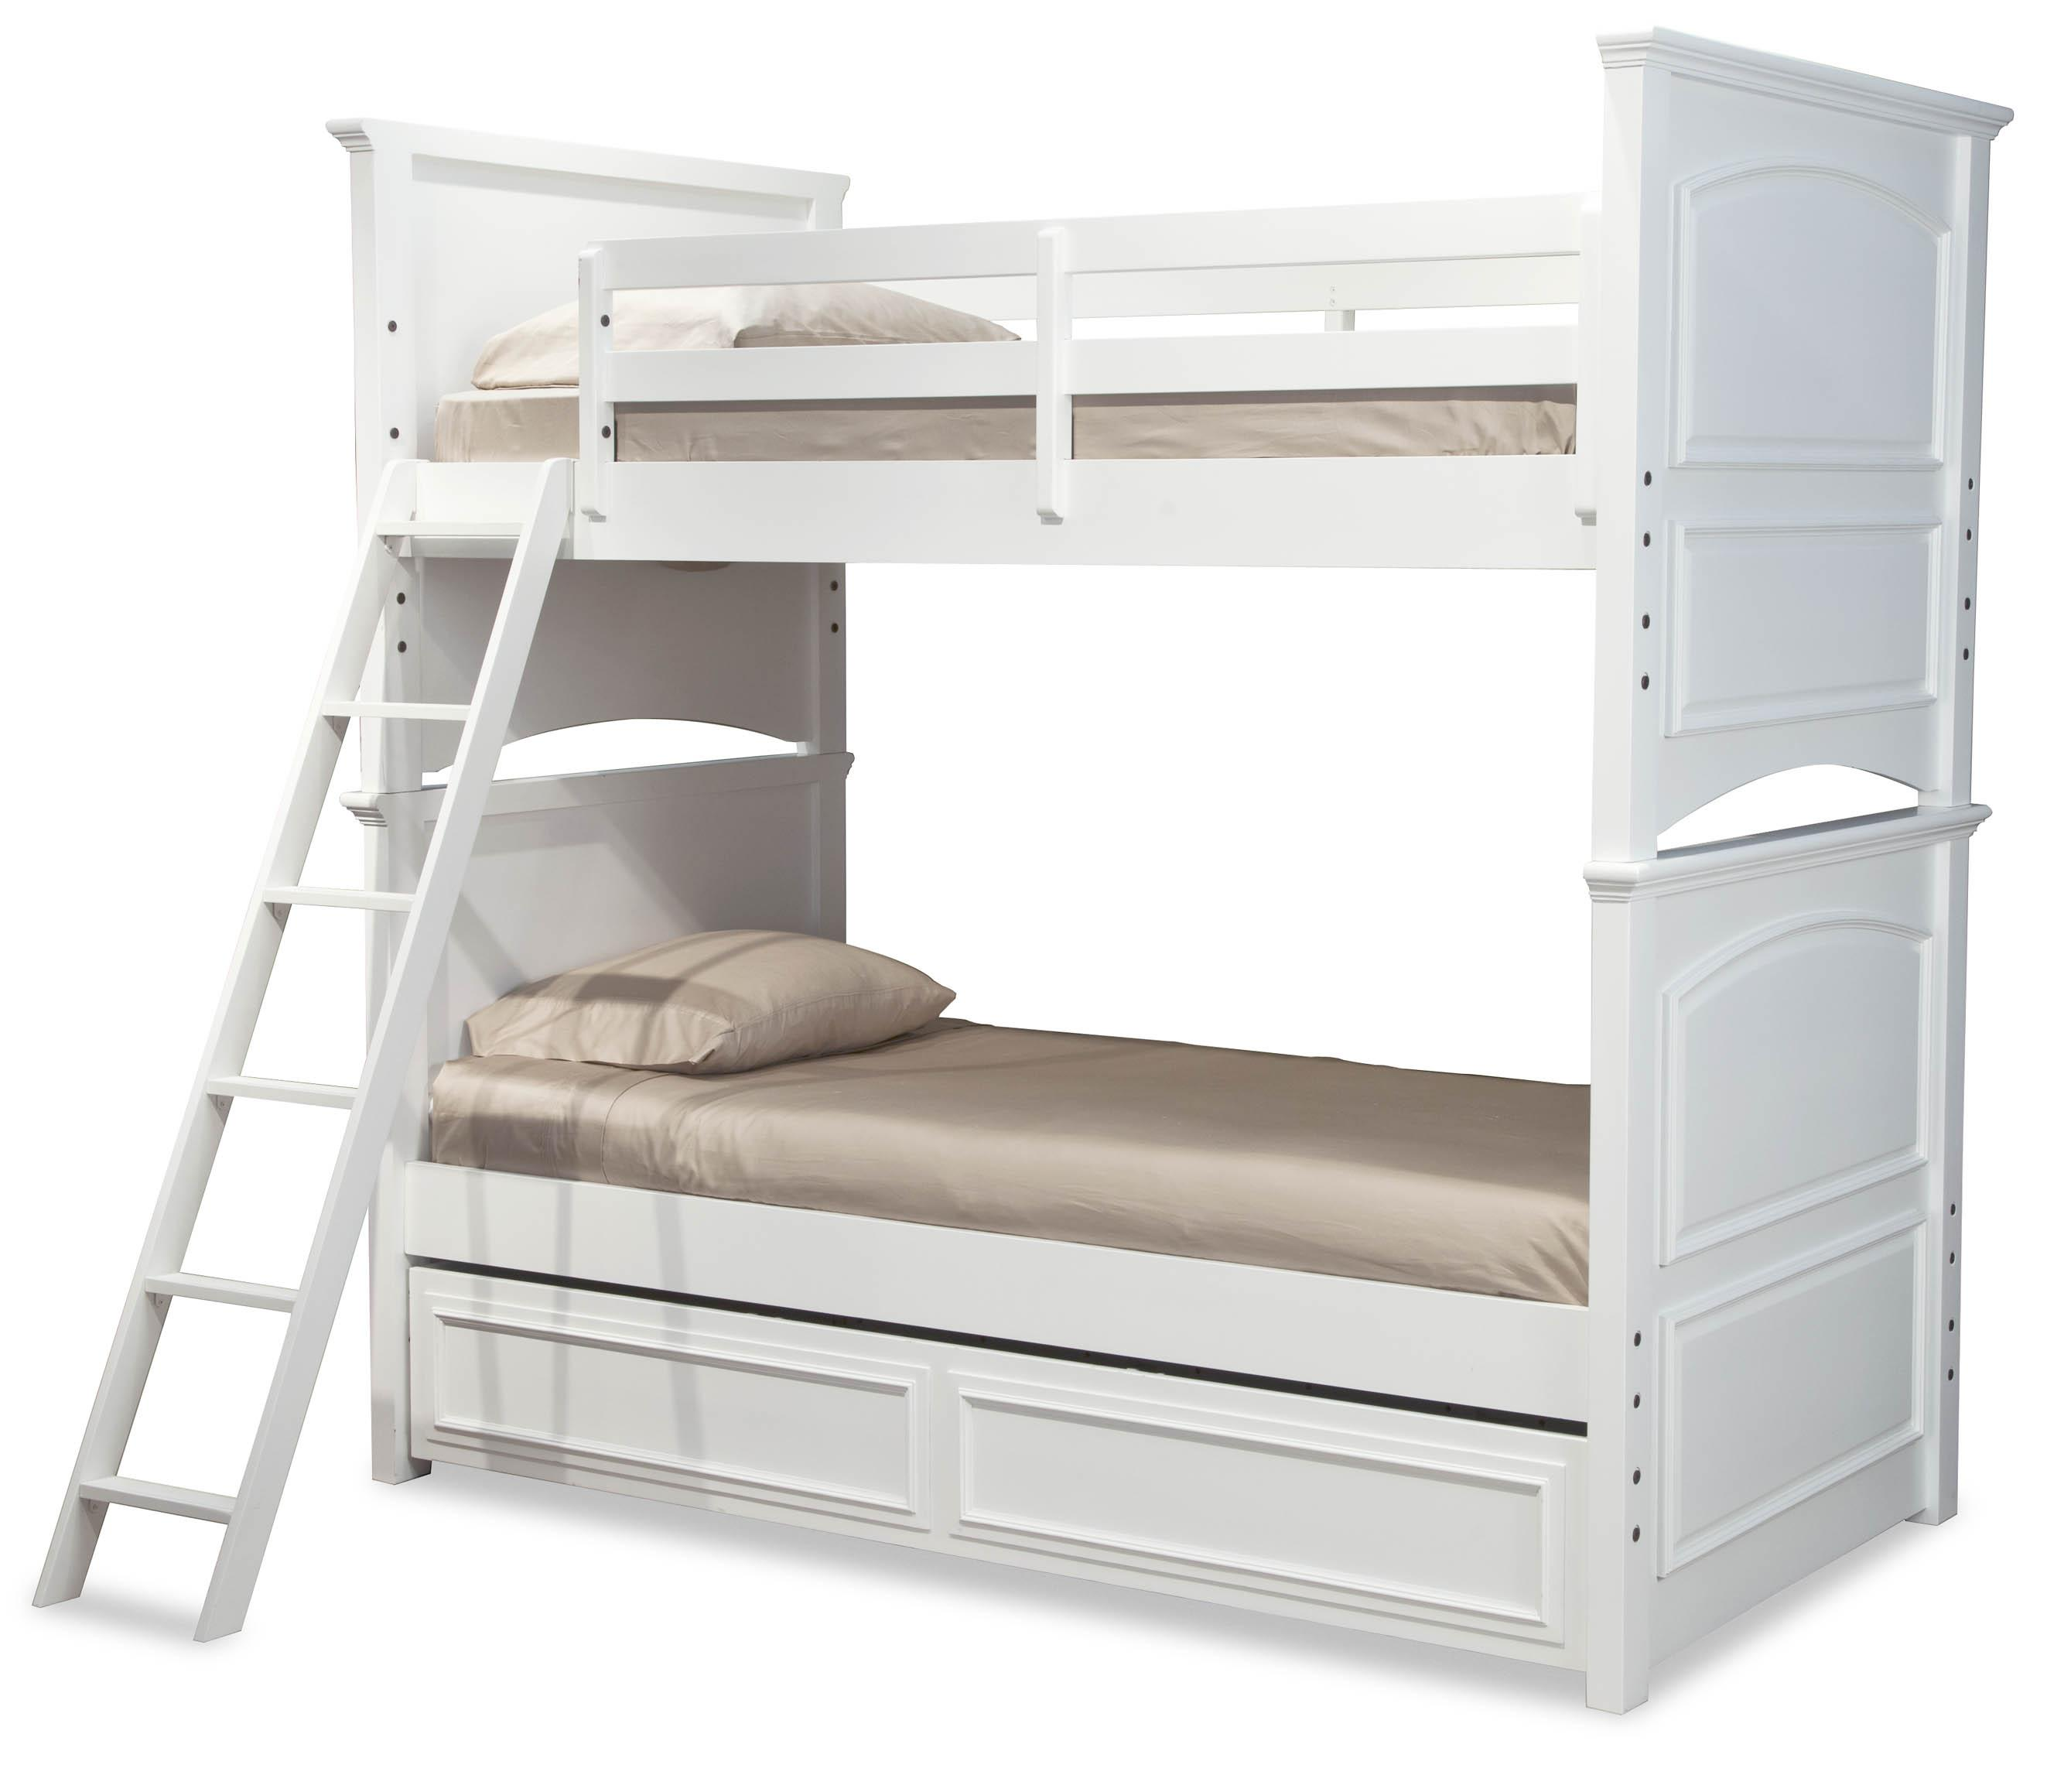 Legacy Classic Kids Madison Complete Twin over Twin Bunk Bed w/ Trundle - Item Number: 2830-8110K+9500